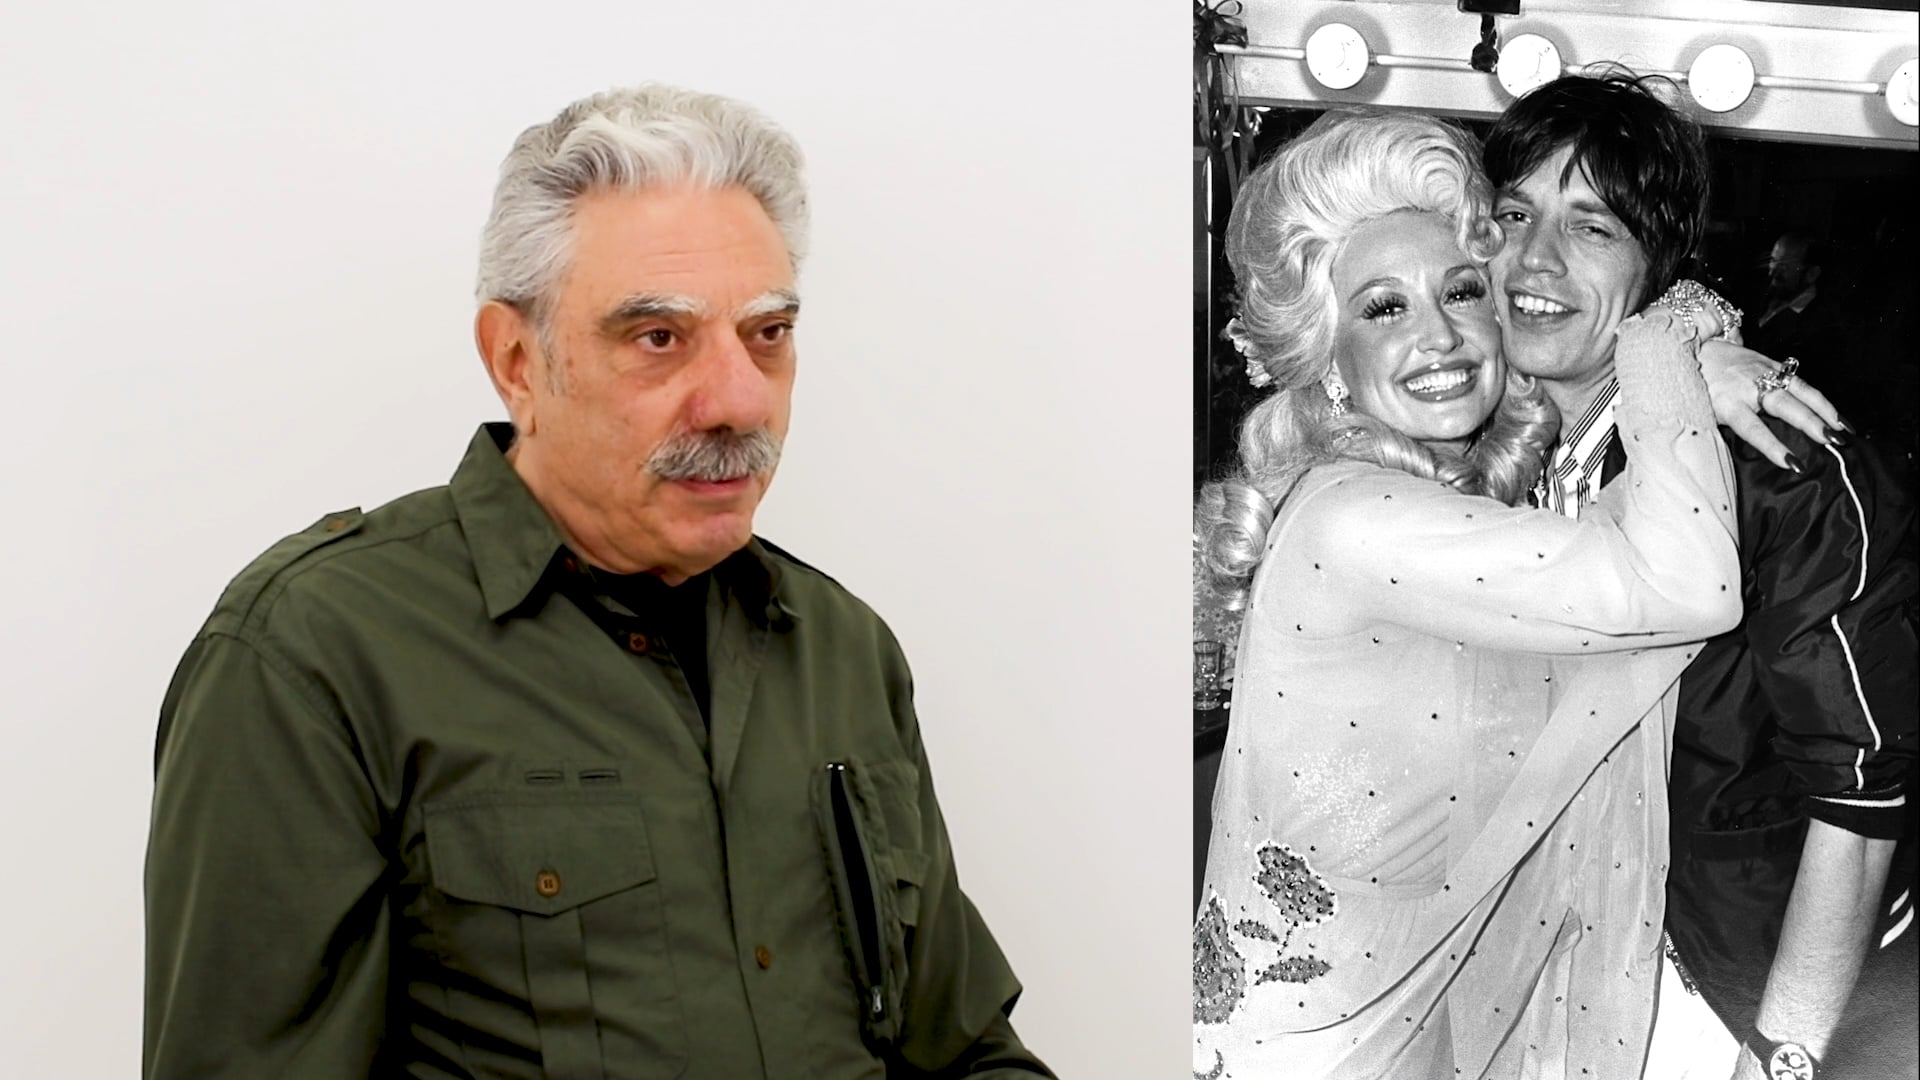 Photographer Allan Tannenbaum discusses Dolly Parton and Mick Jagger